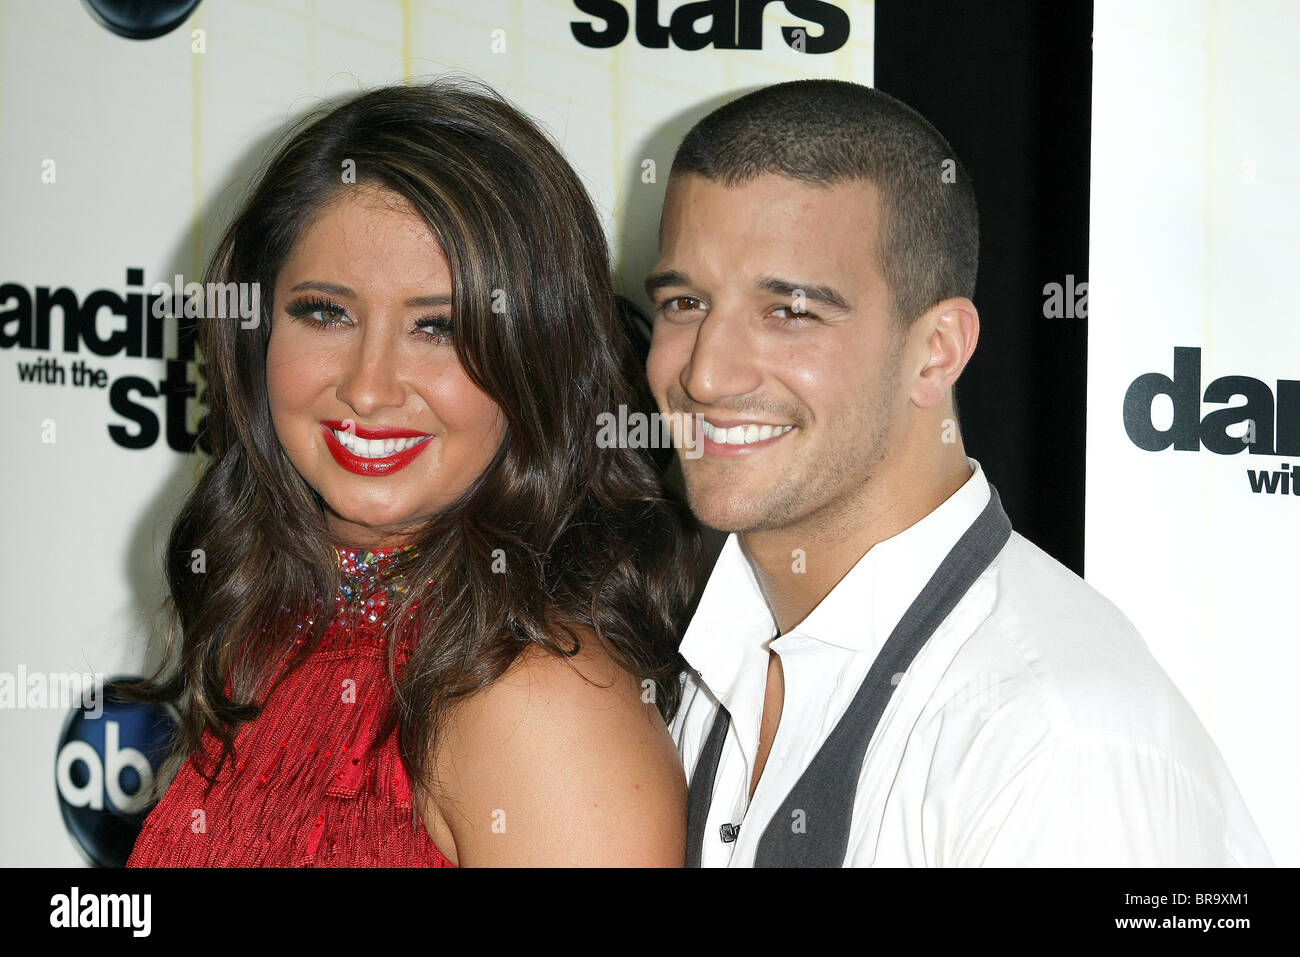 Bristol palin and mark ballas are they dating